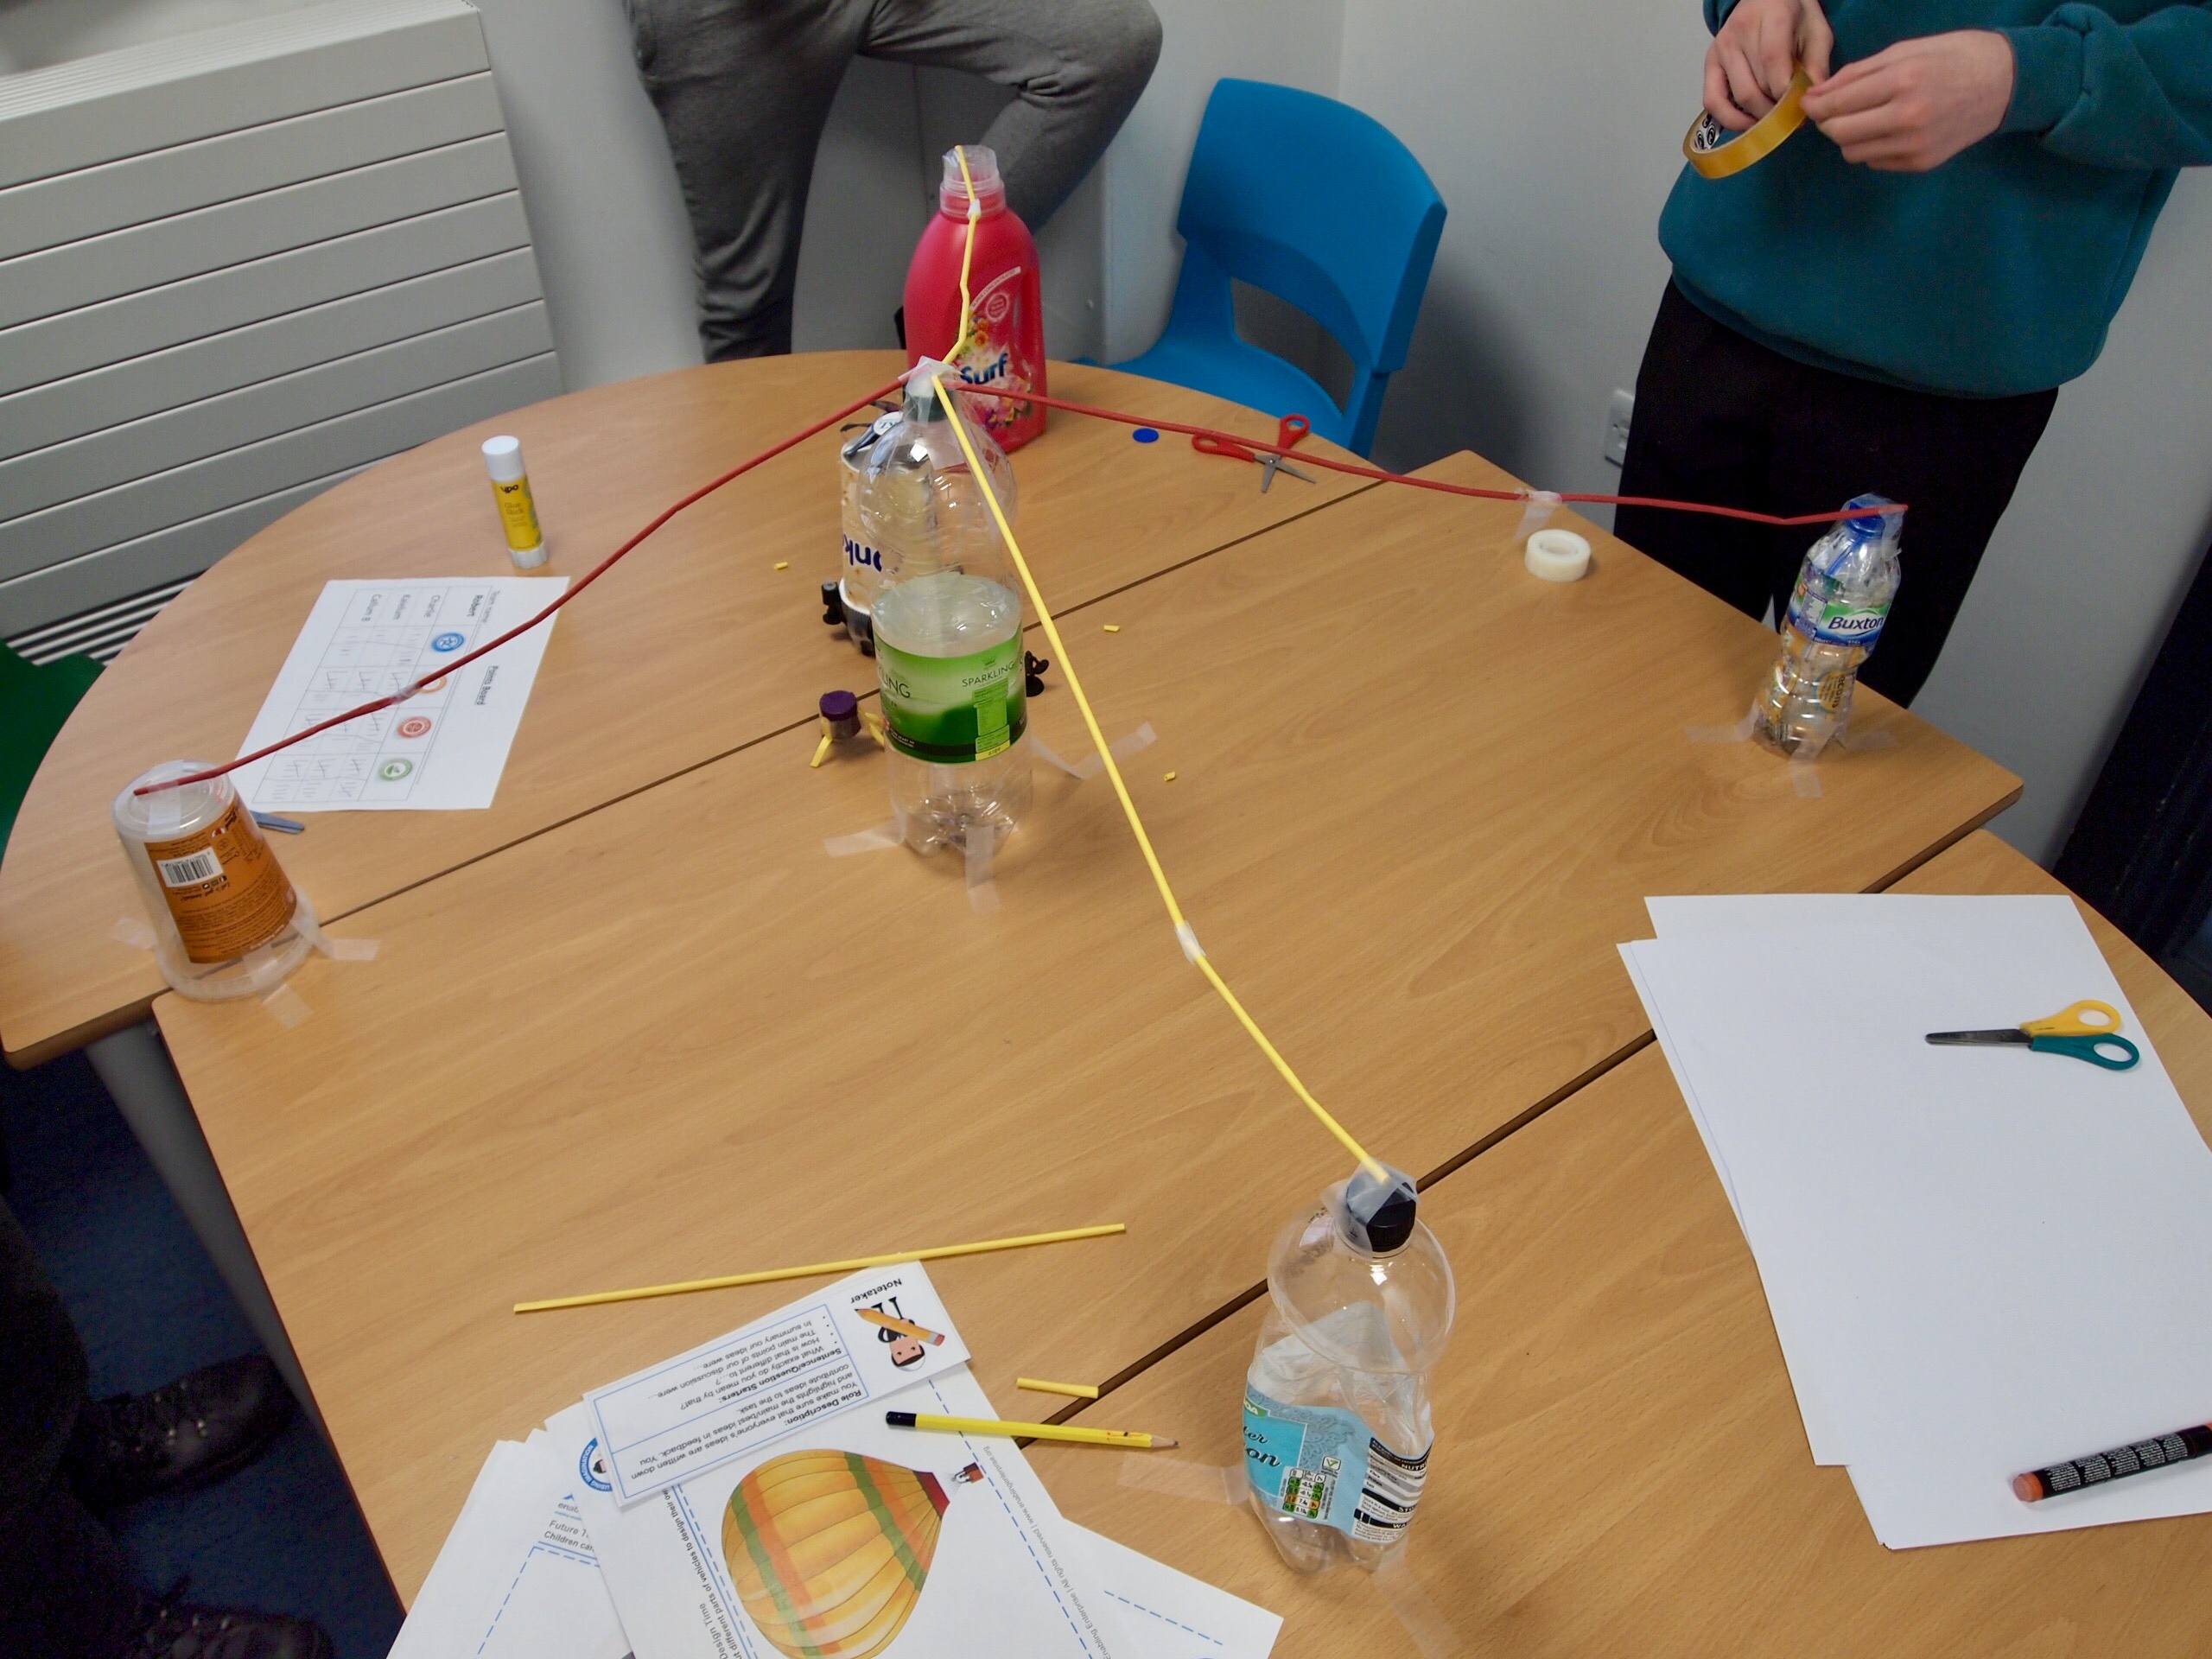 Top Teamwork and Creativity at Pioneer House High School in Manchester